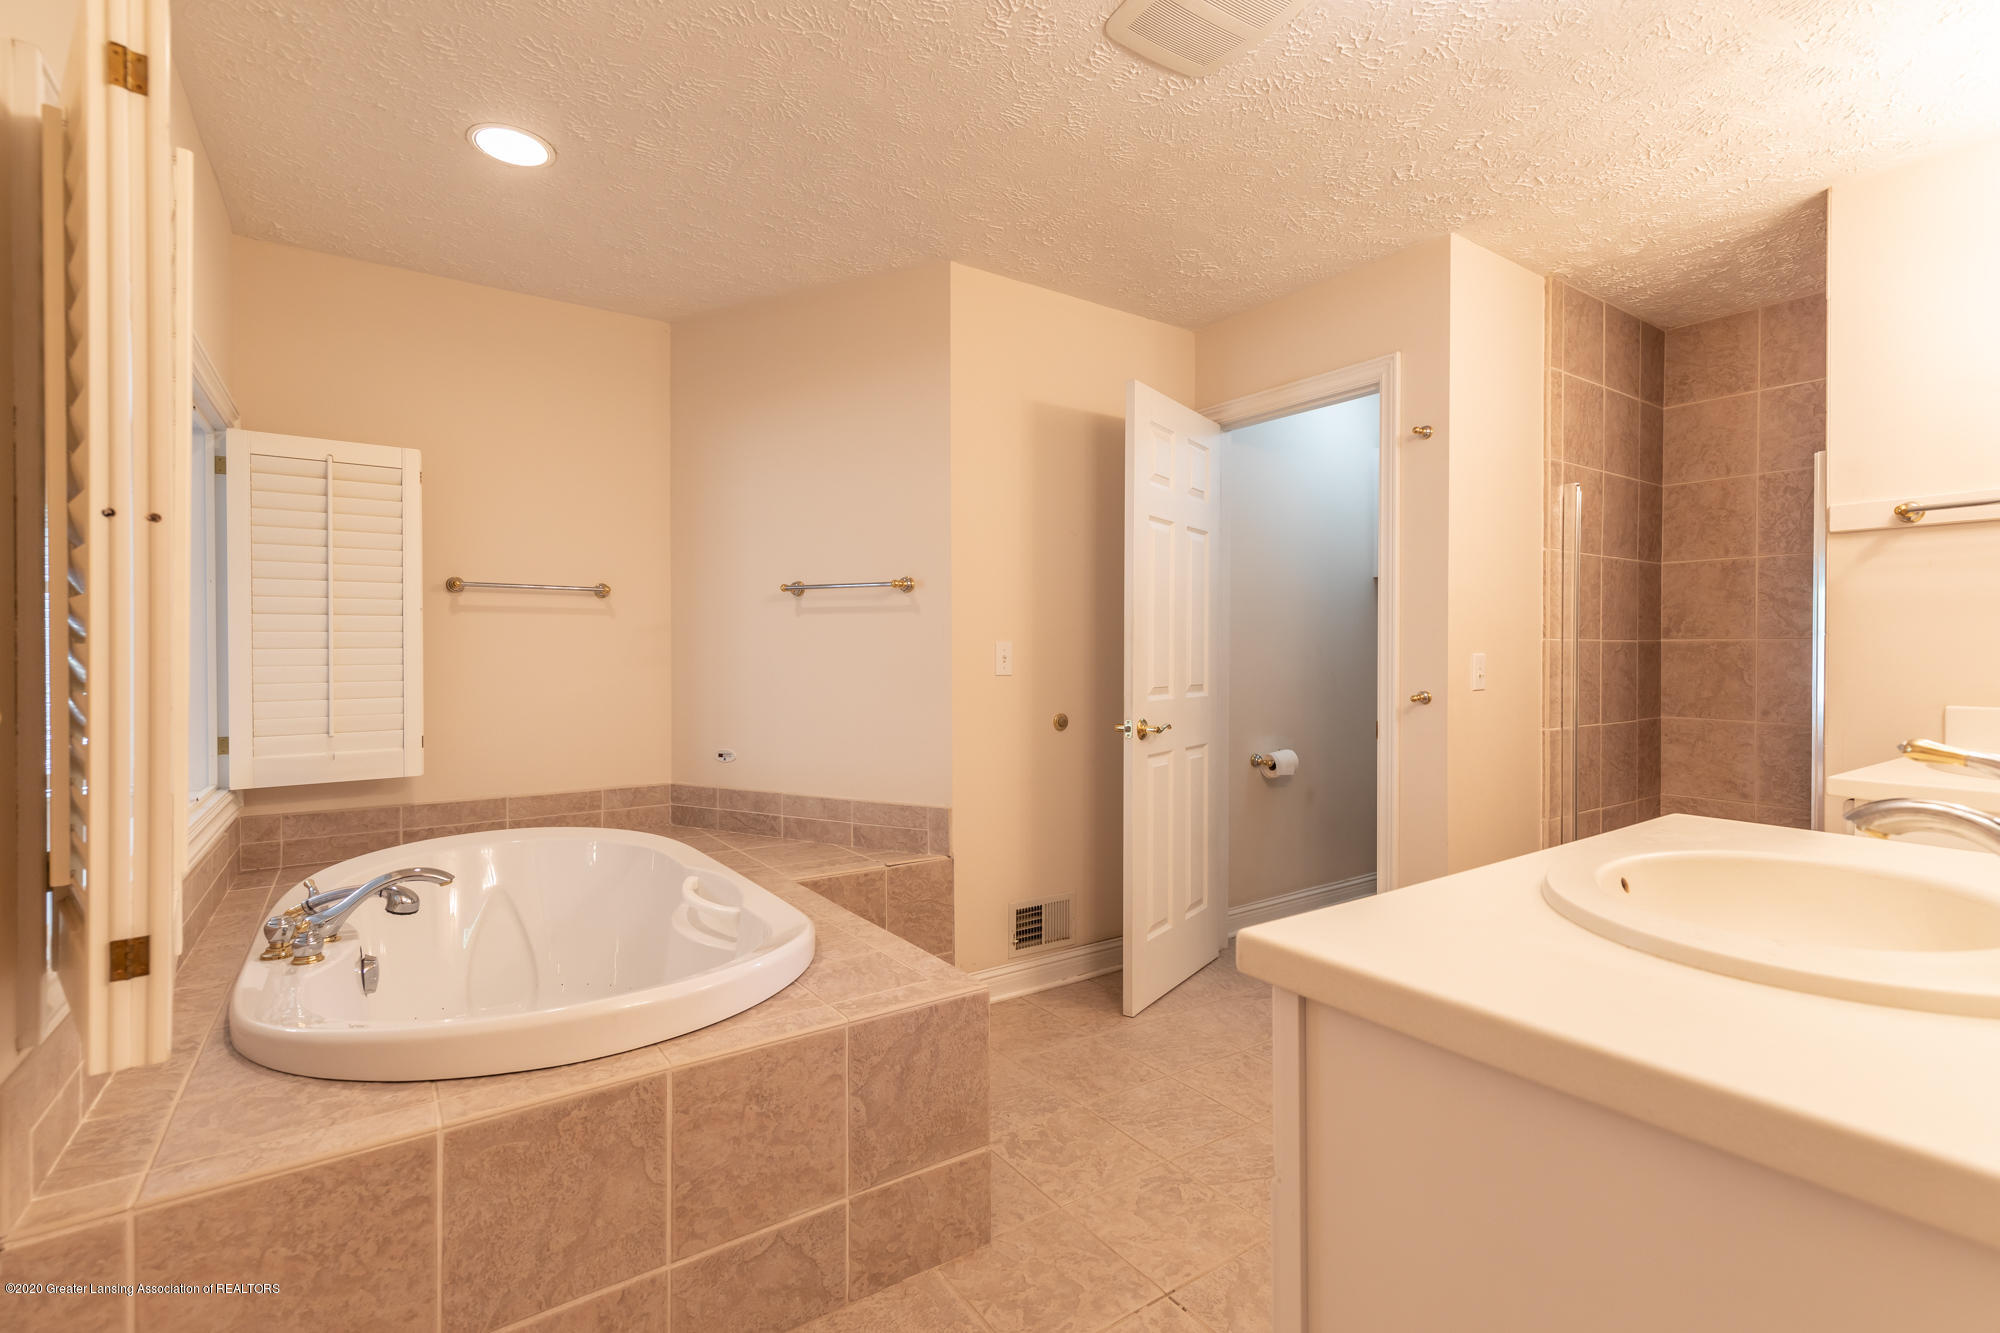 2072 Riverwood Dr - riverwoodmasterbath1(1of1) - 23